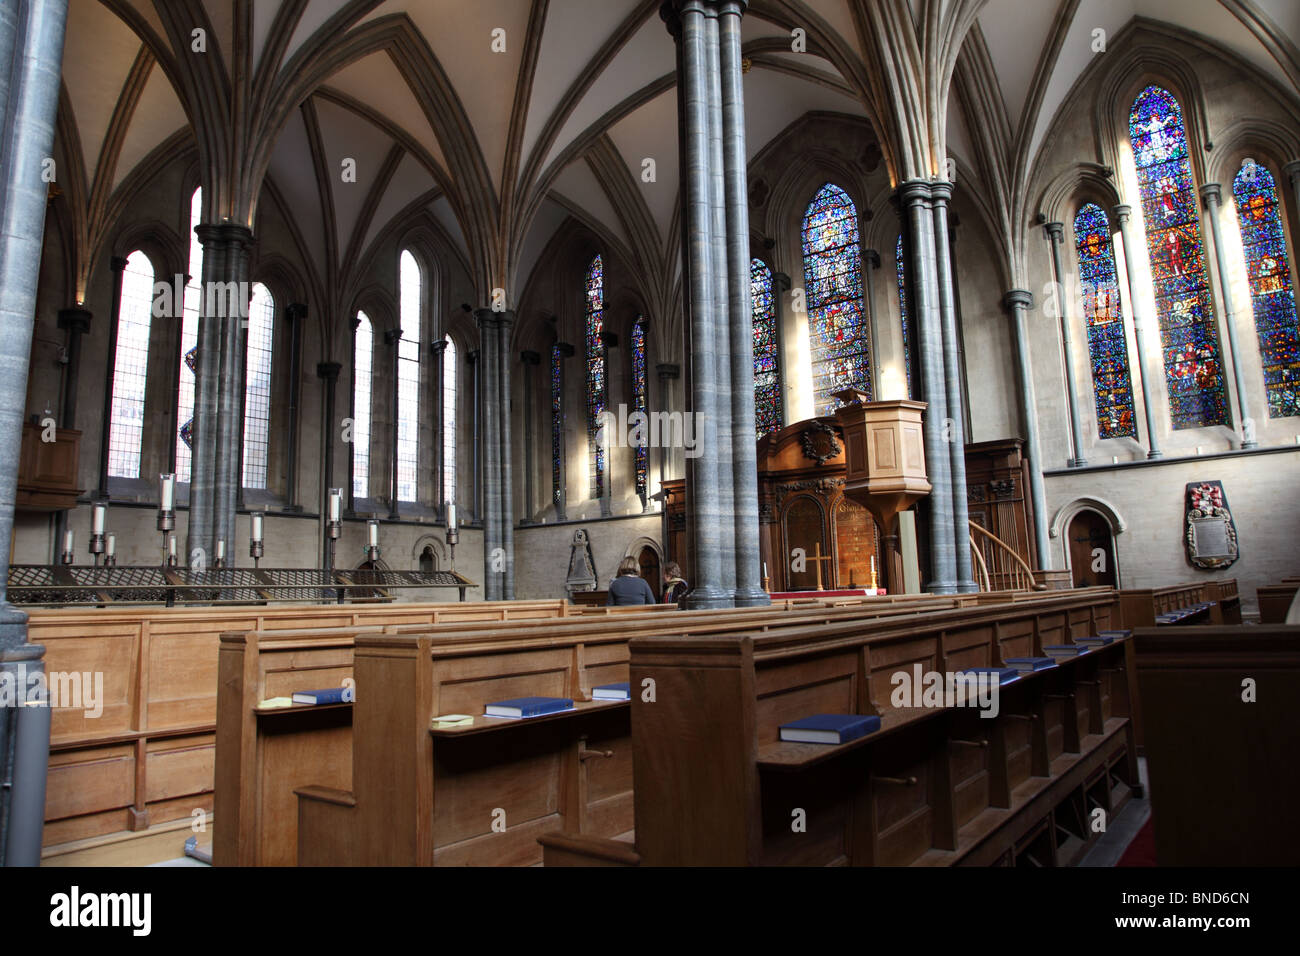 An interior view of the Knights Templar Church, The Temple, City of London, EC4. - Stock Image